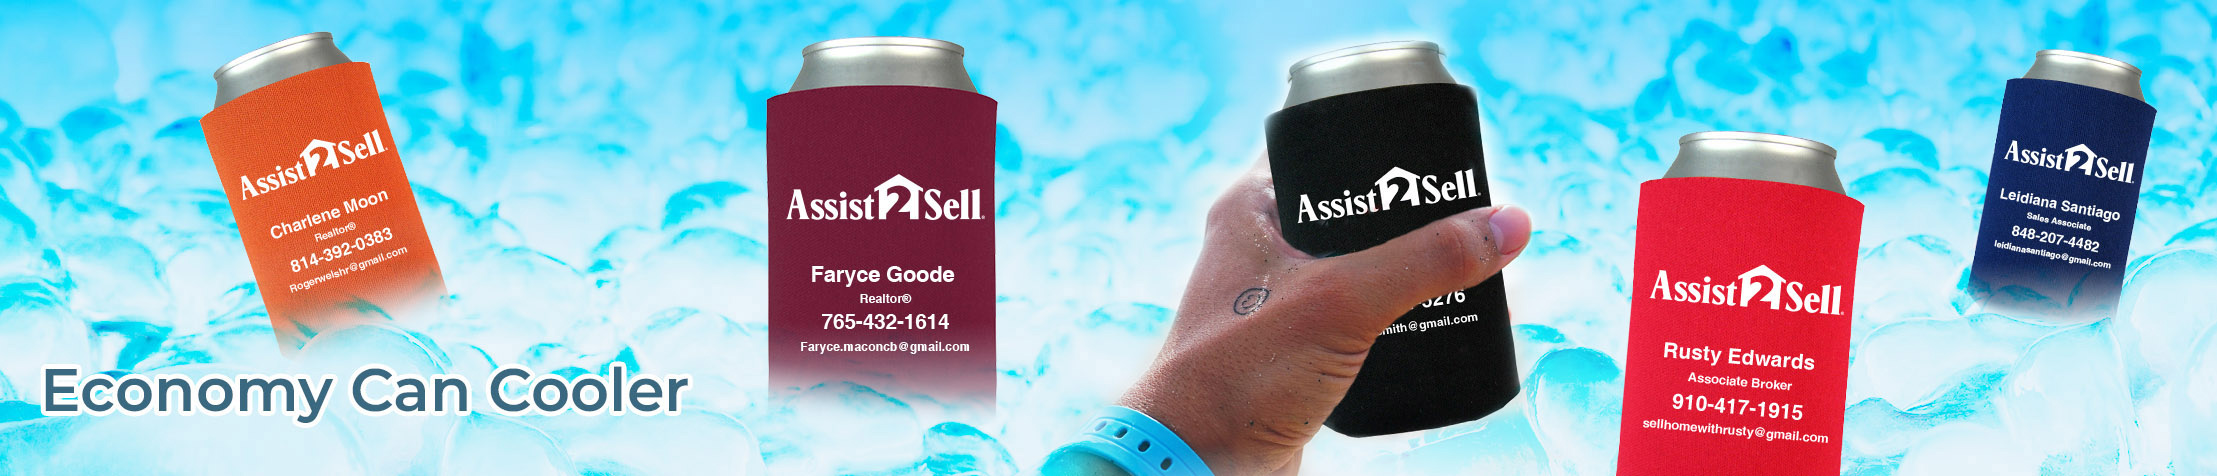 Assit2Sell Real Estate Economy Can Cooler - Assit2Sell Real Estate  personalized realtor promotional products | BestPrintBuy.com